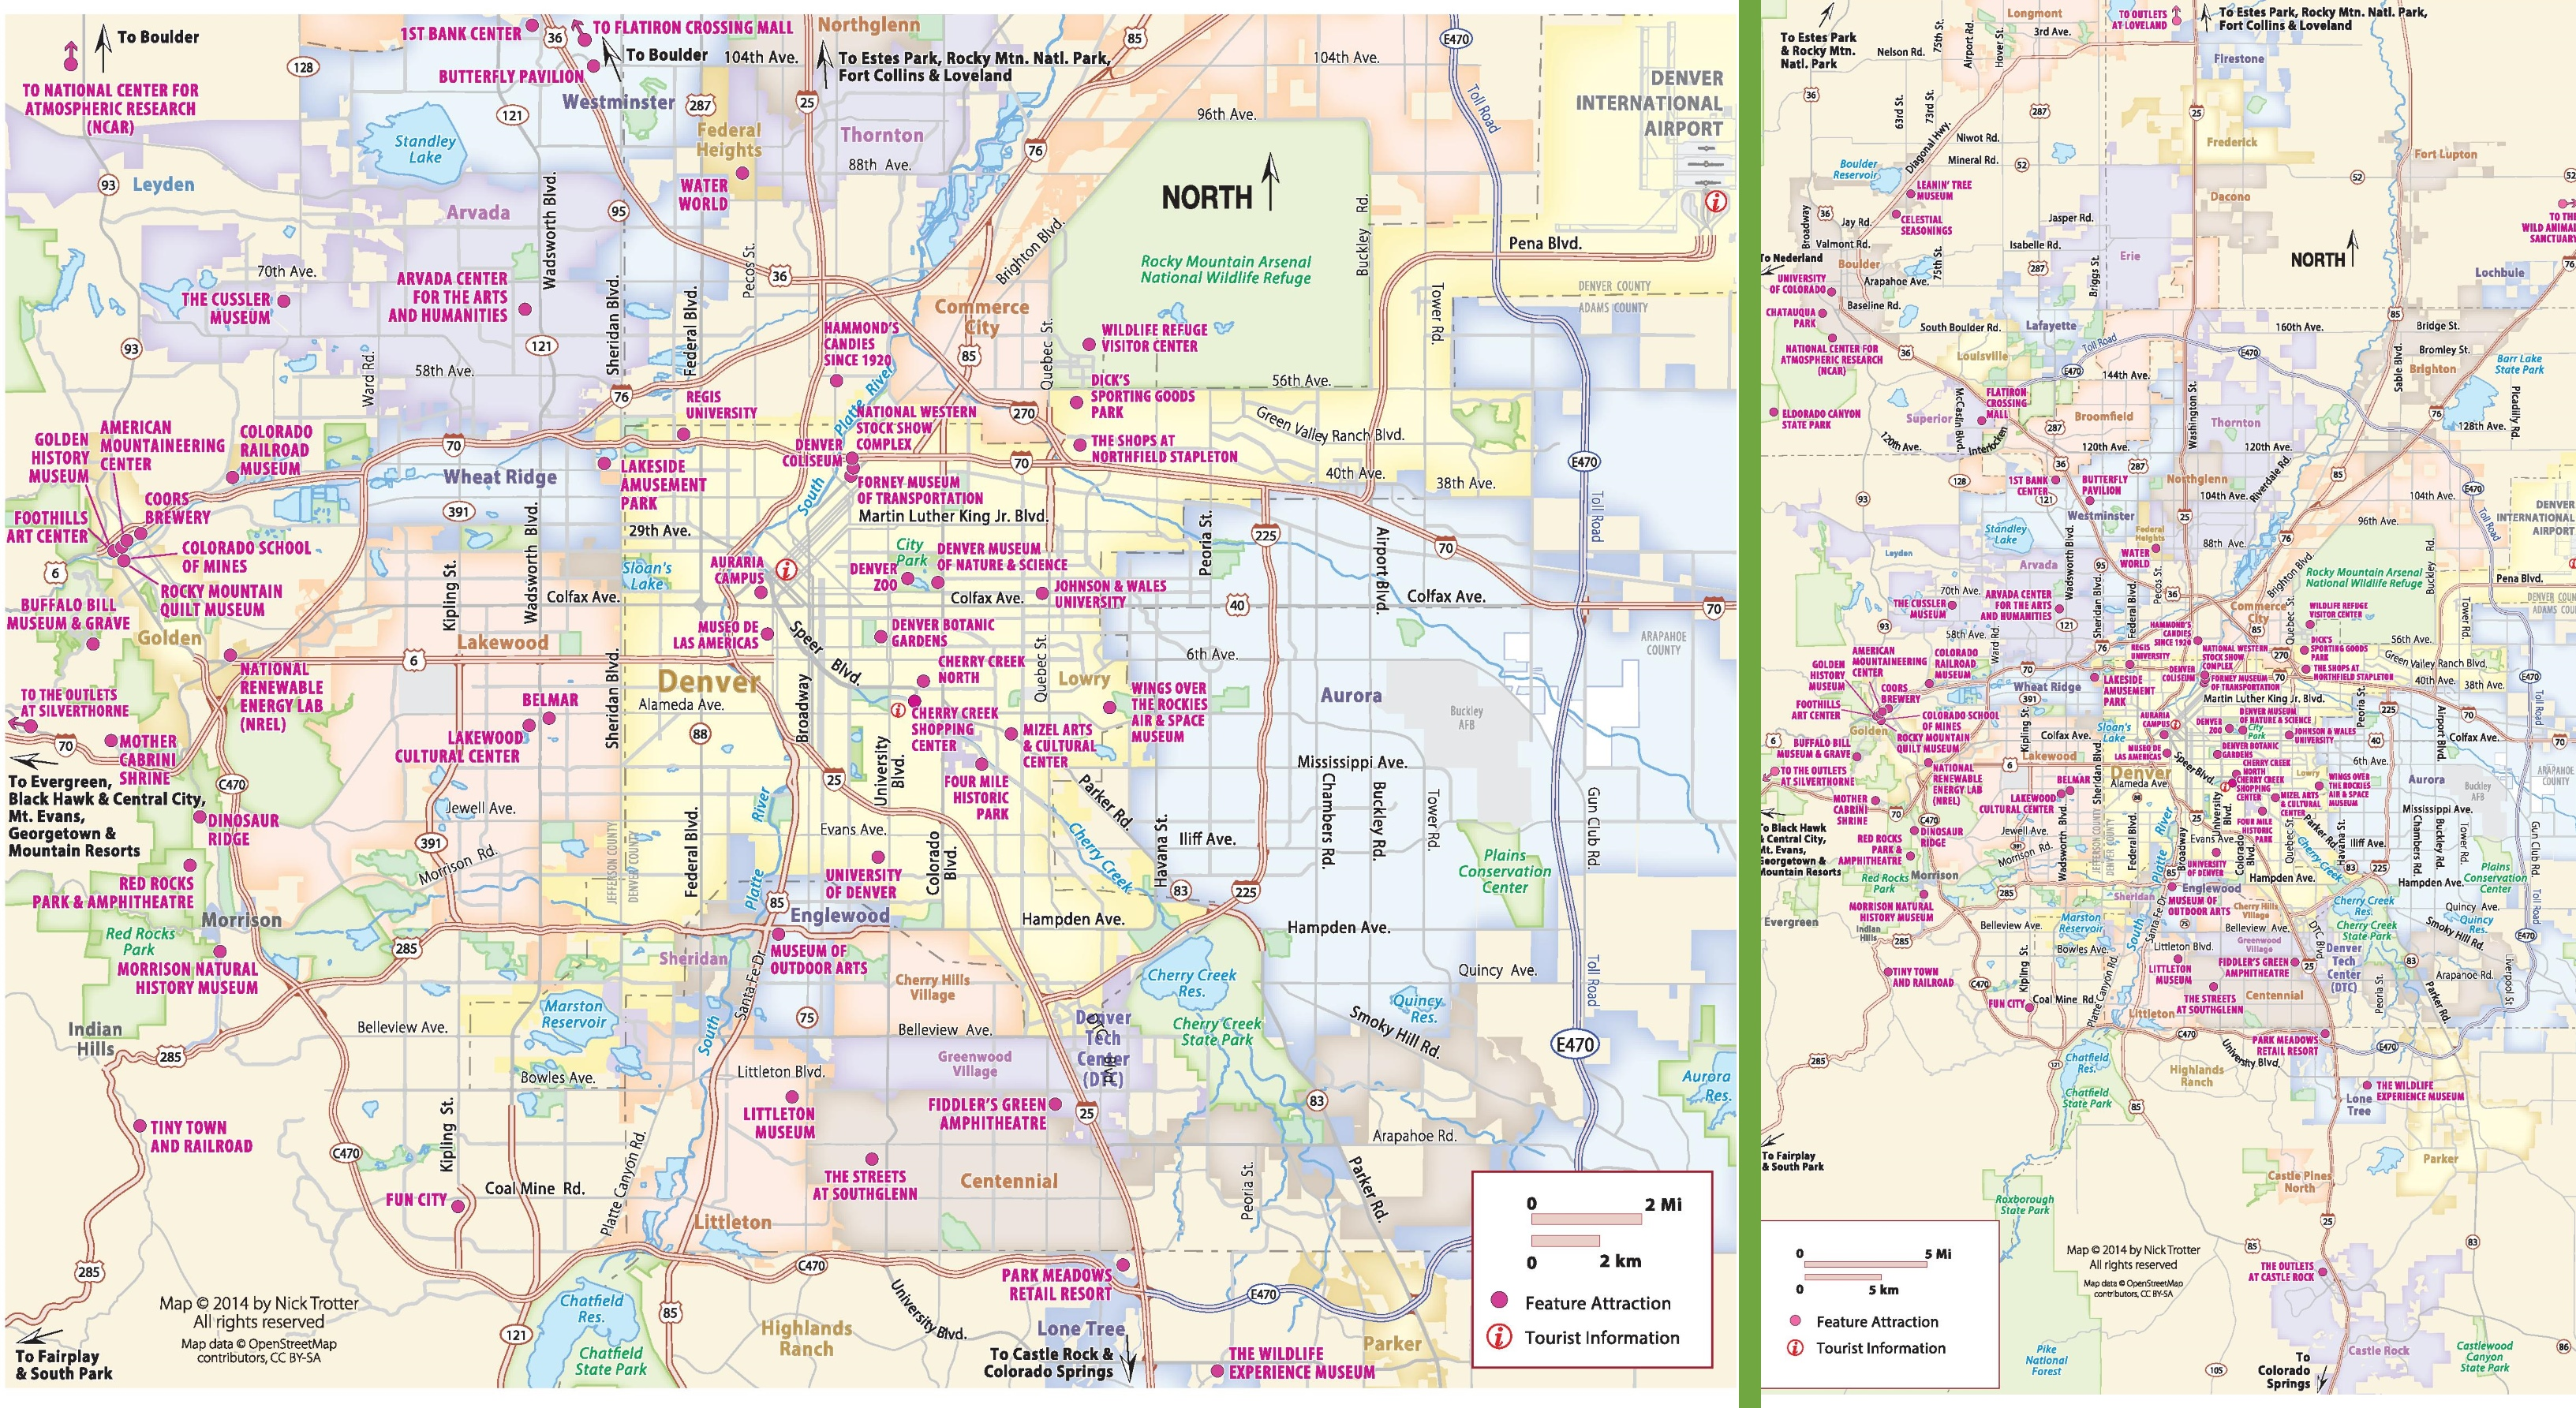 denver tourist attractions map -